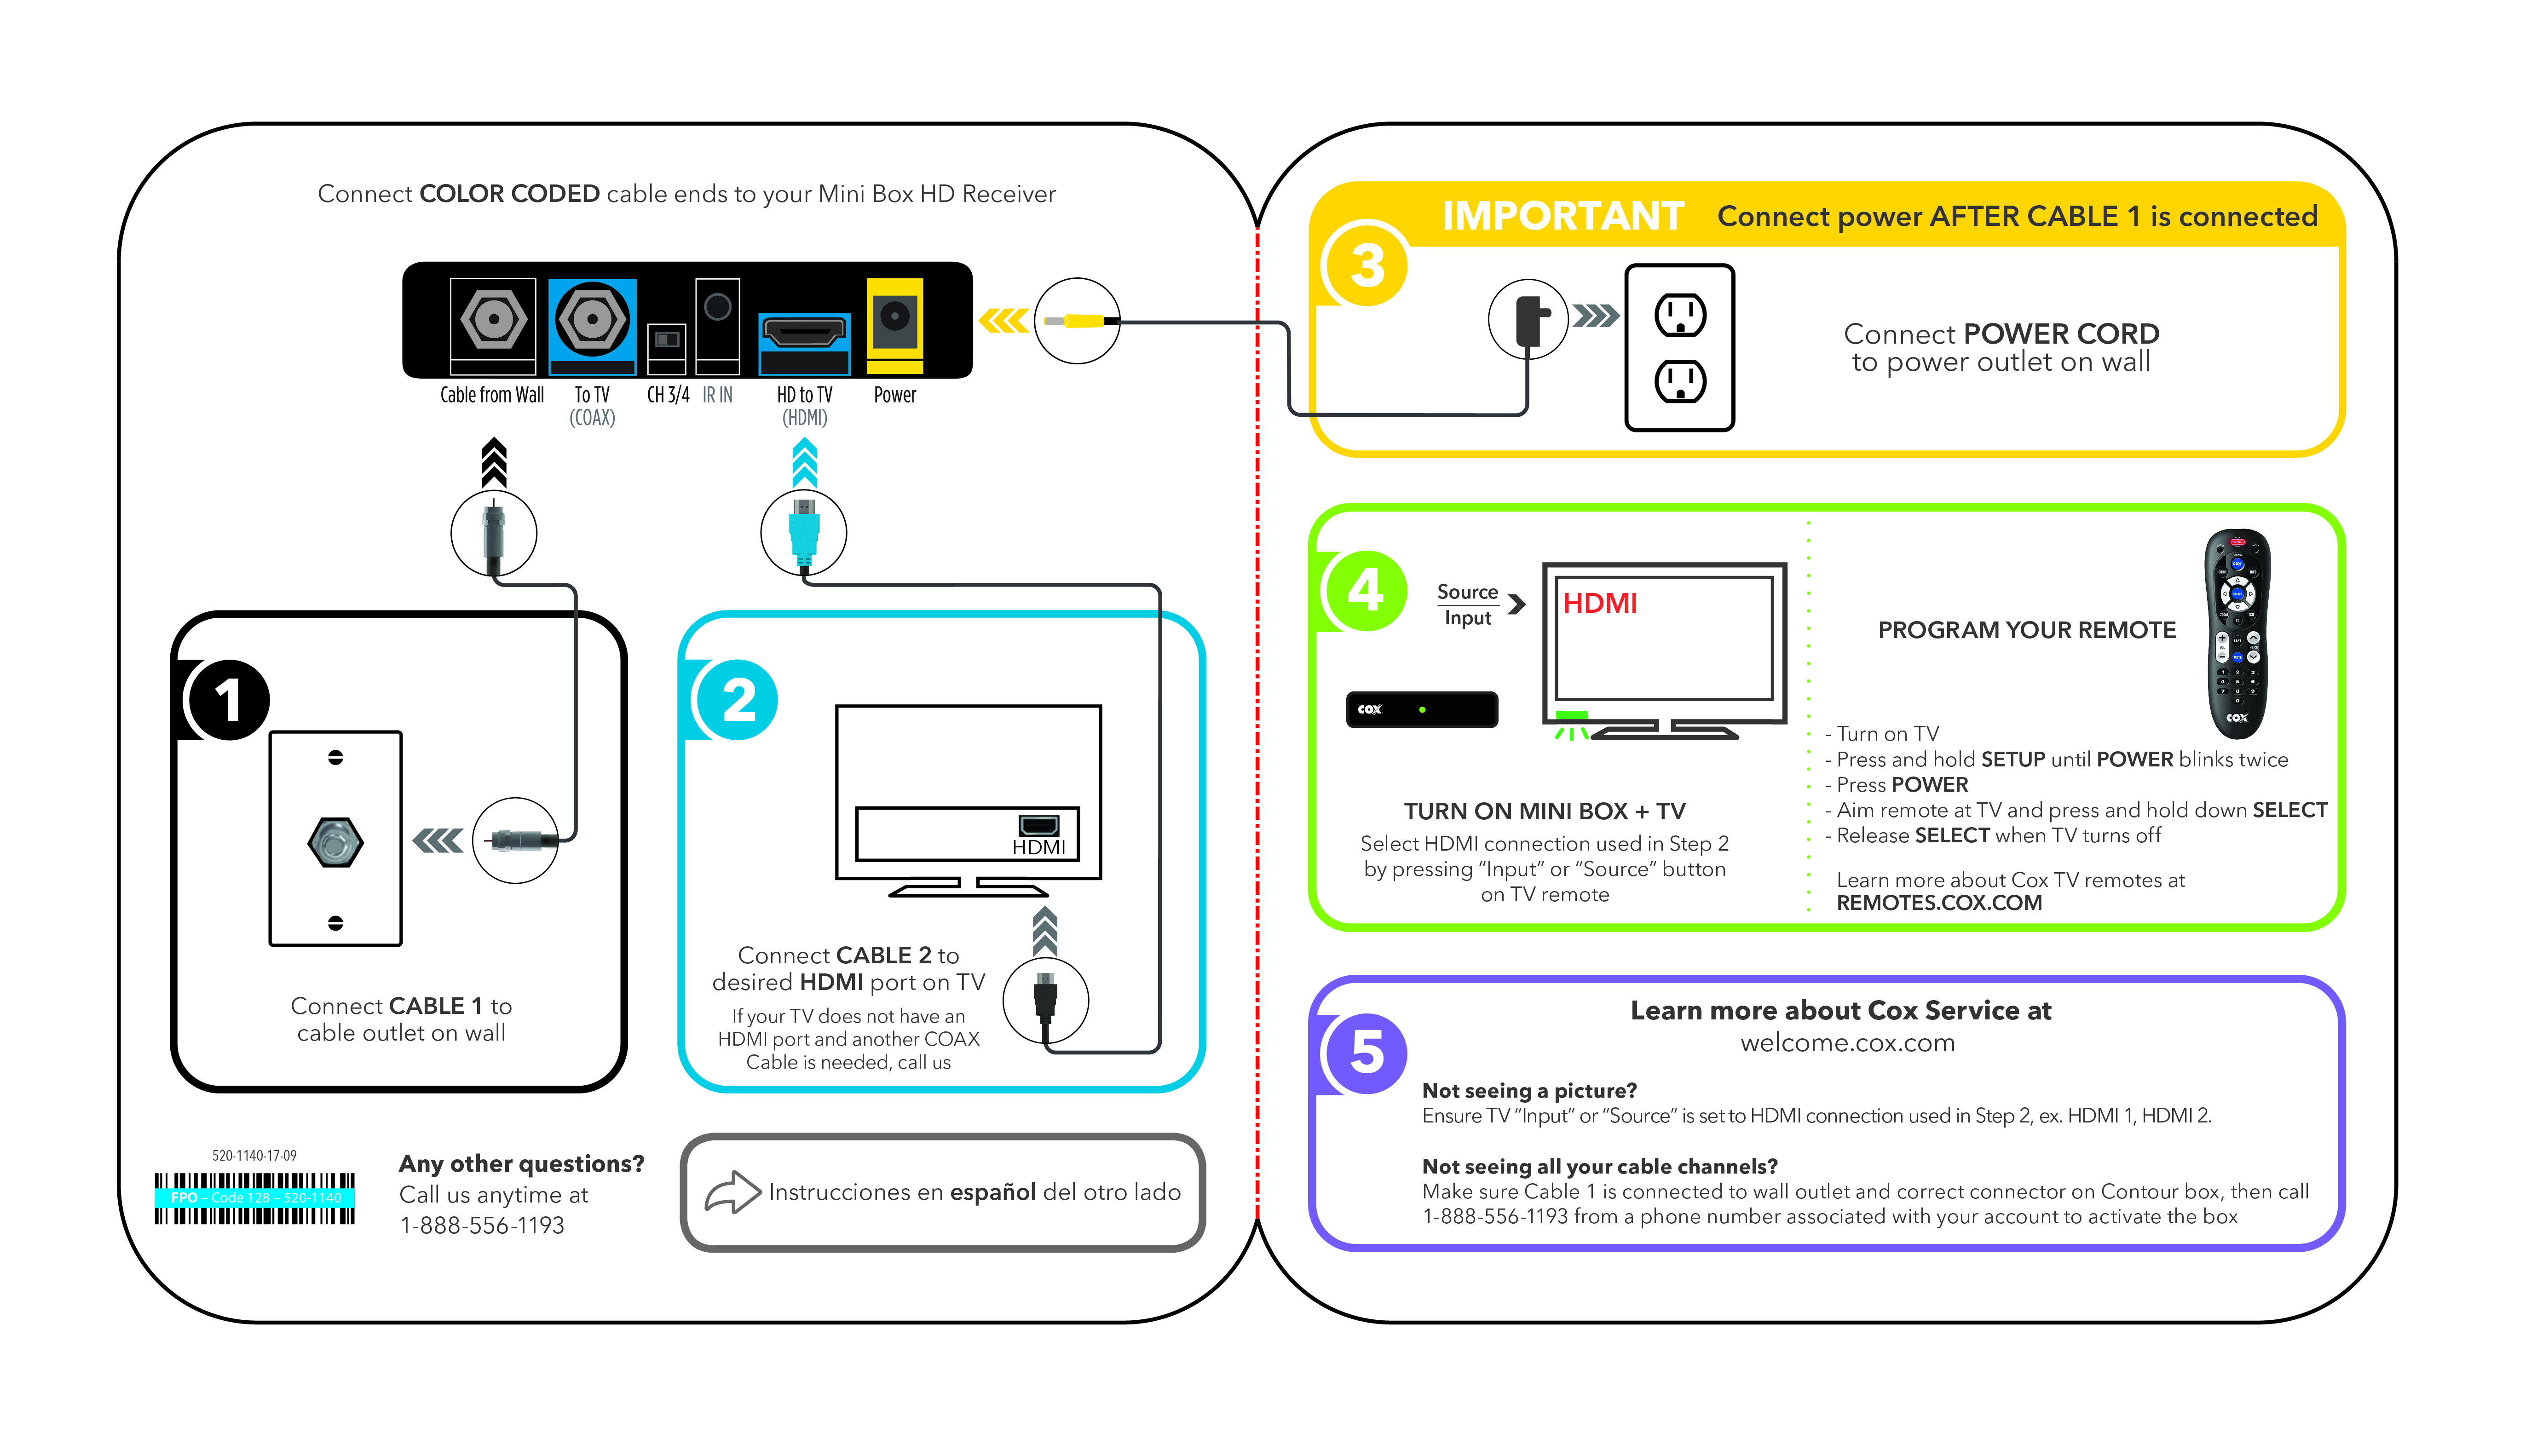 hdmi setup diagram do it yourself house wiring cox self installation kits and user guides tv equipment install